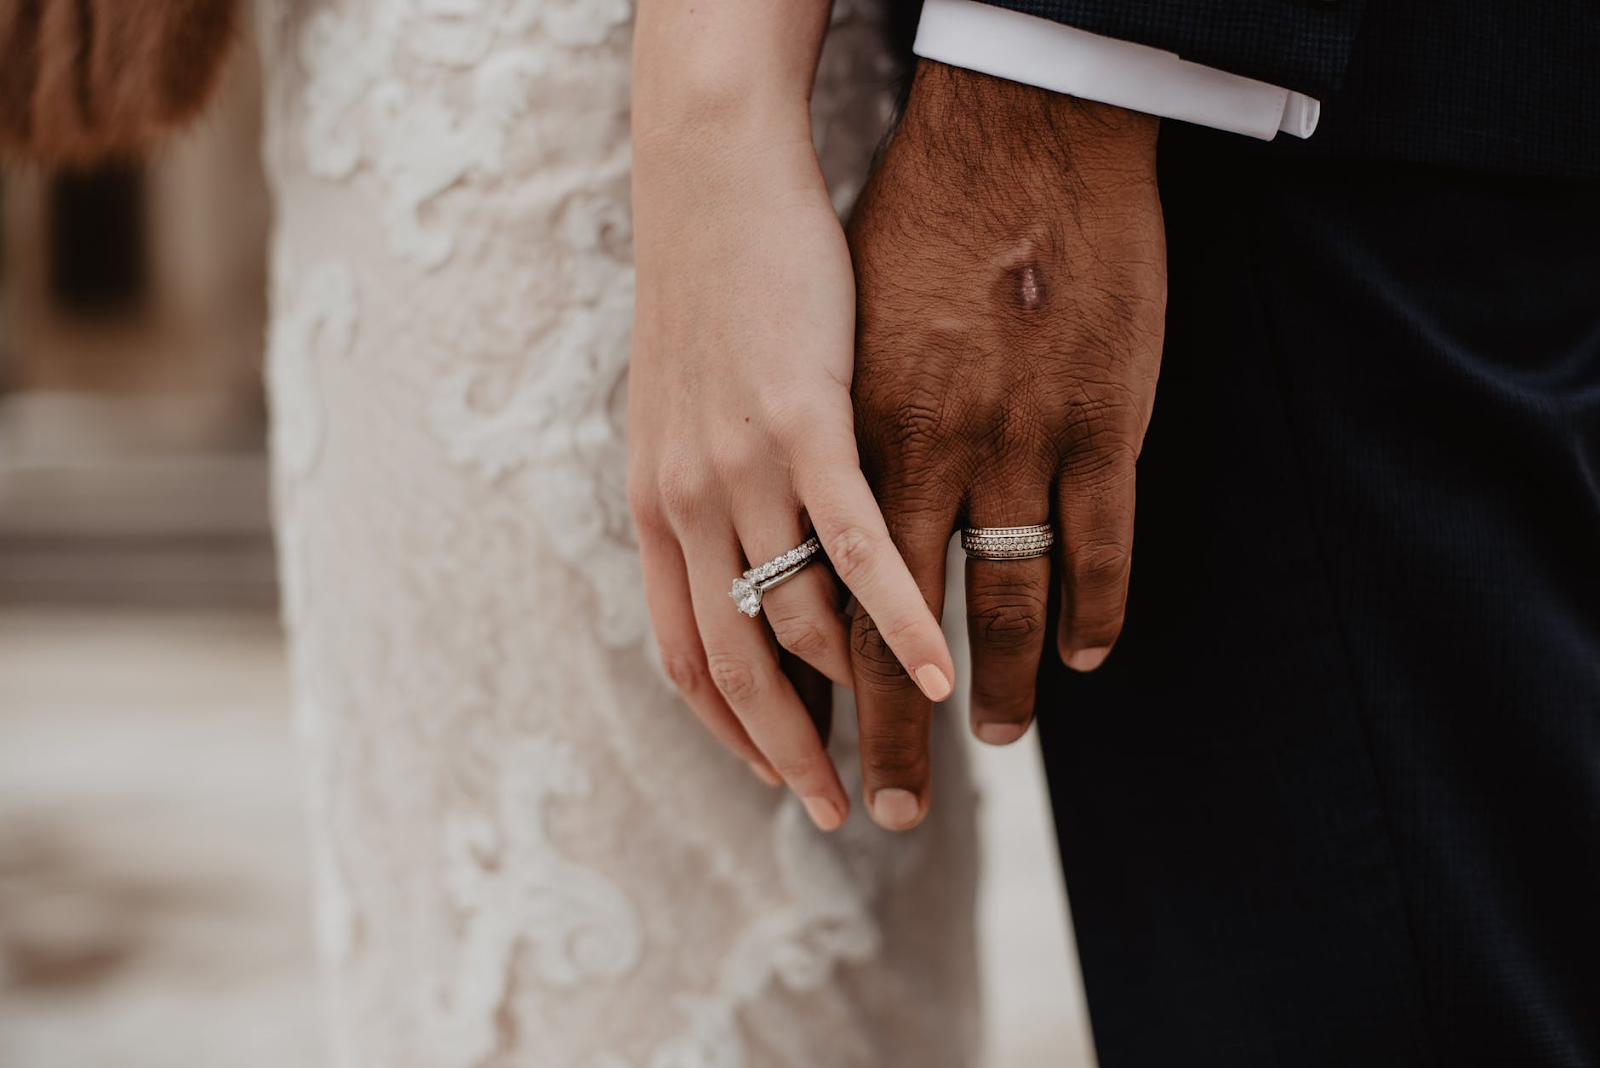 Image of married couple holding hands on wedding day.